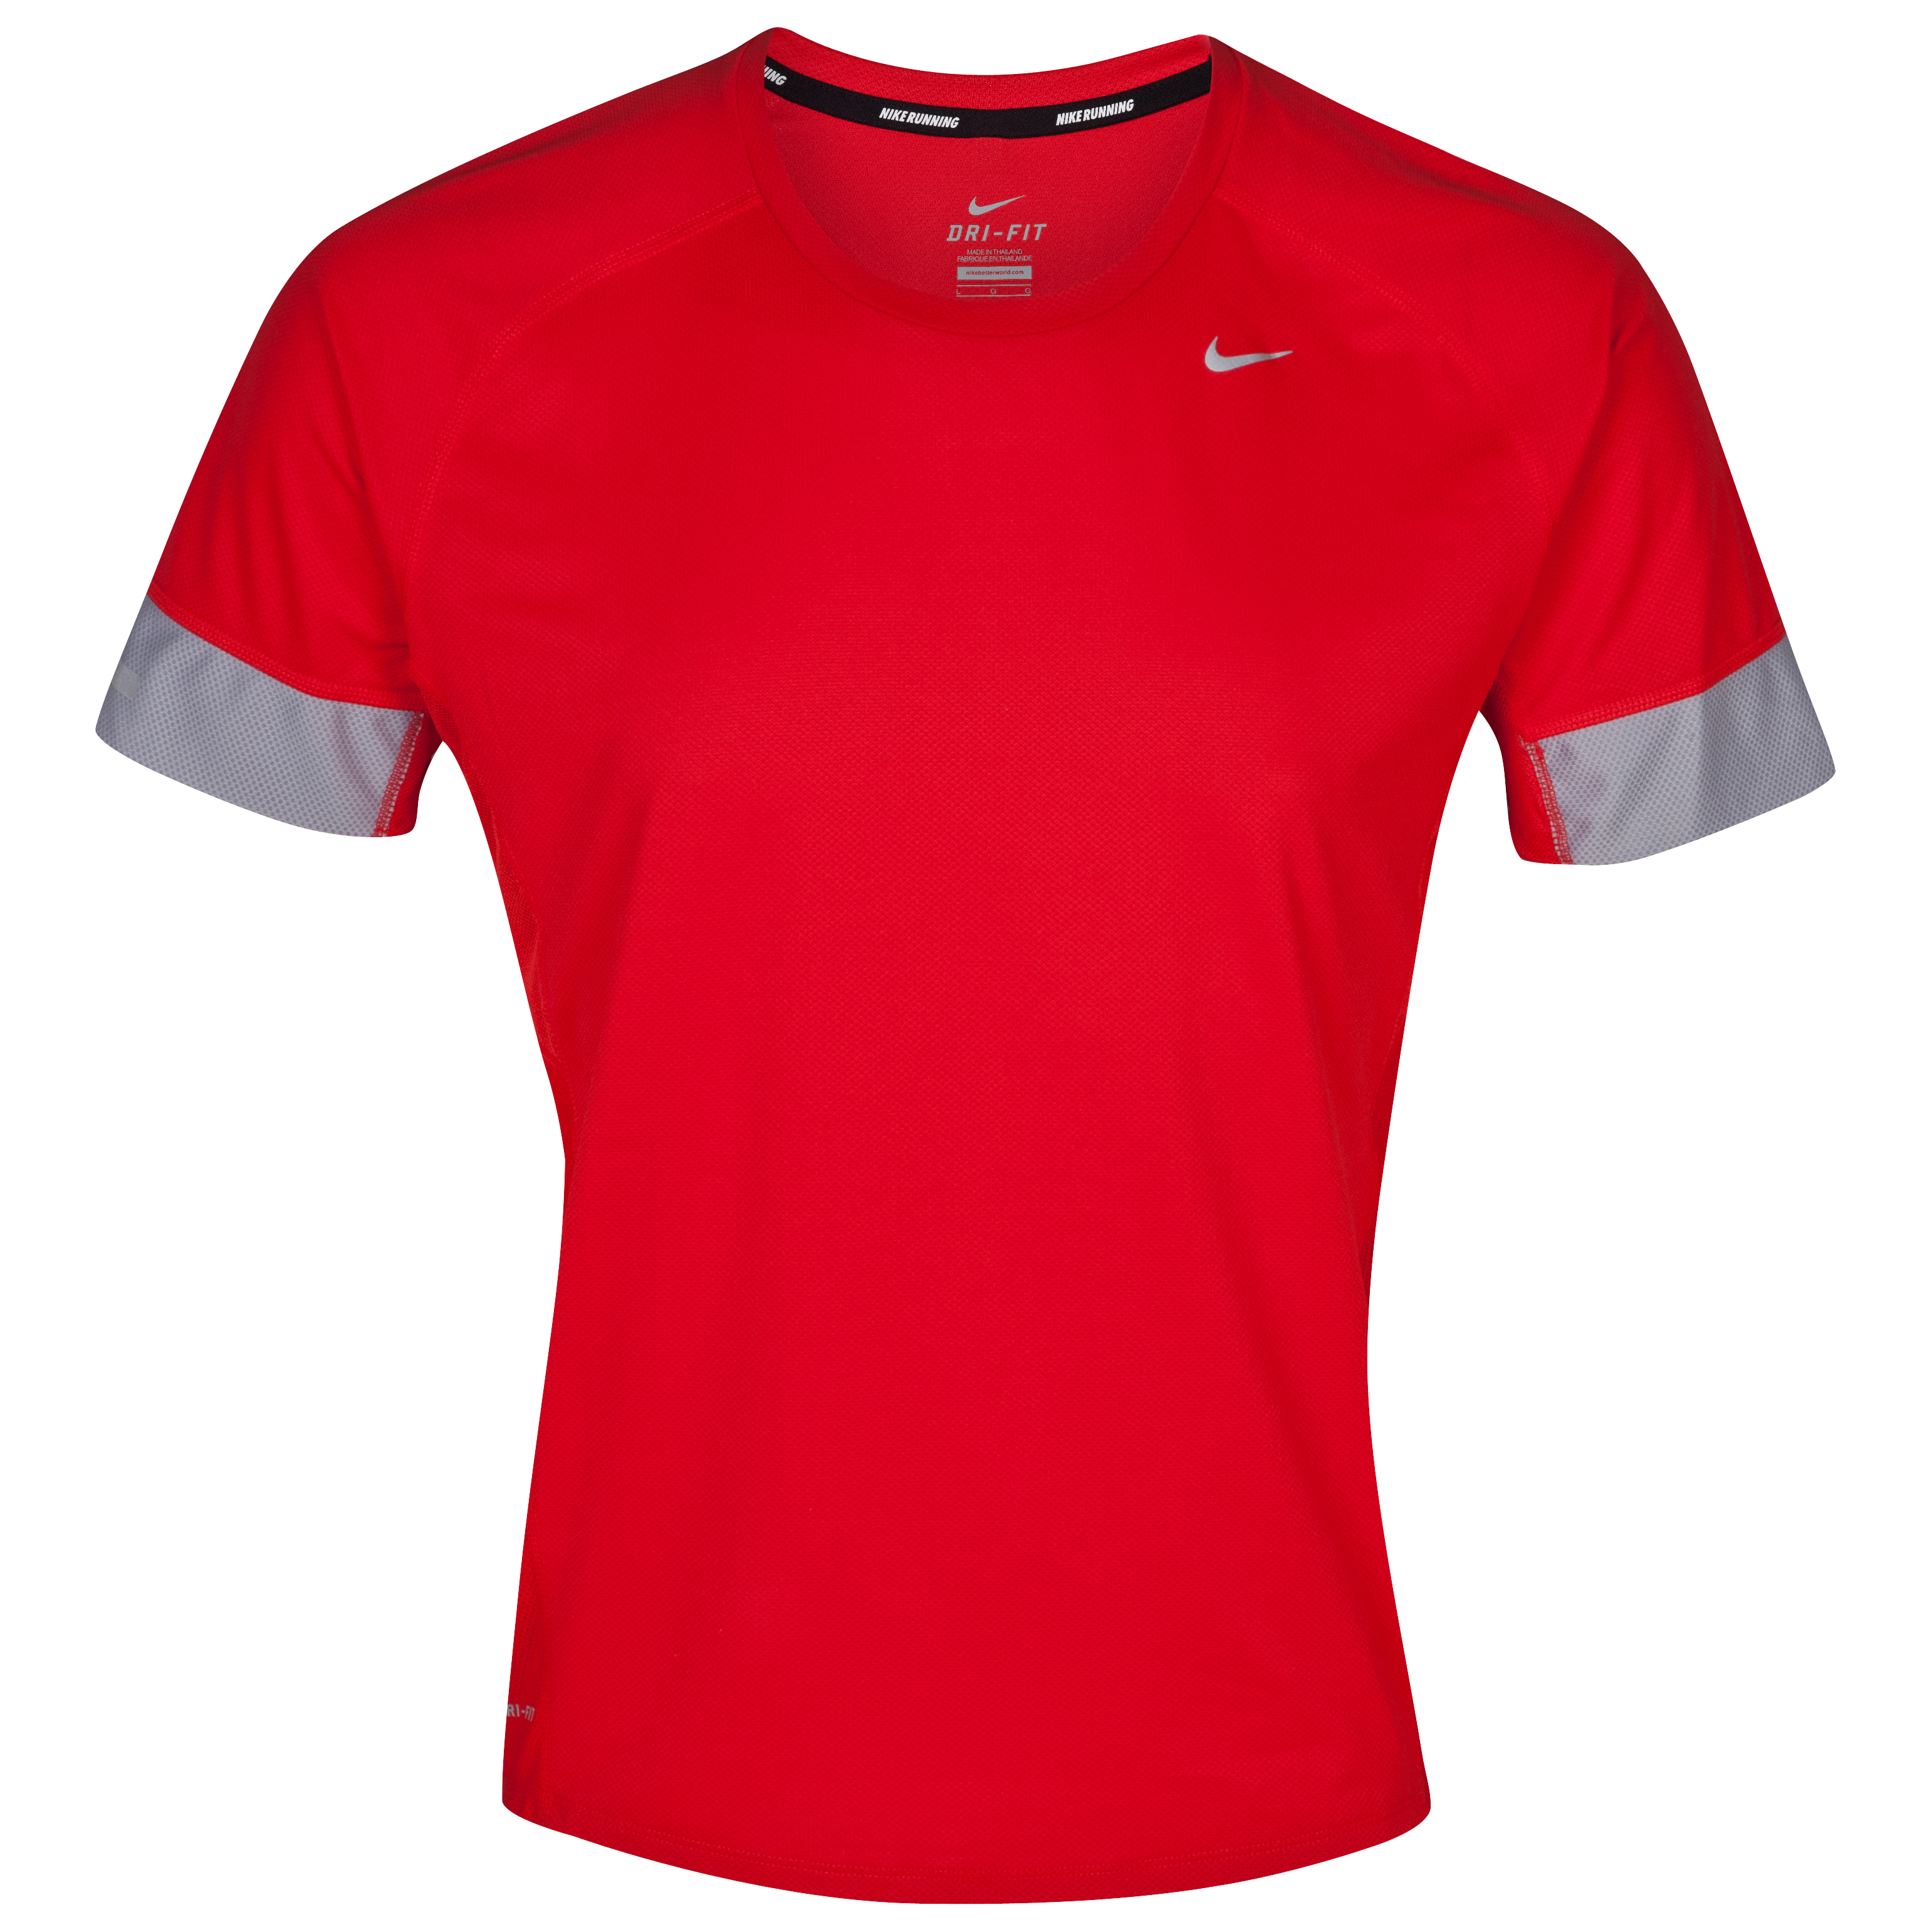 Nike Sphere SS Running T-Shirt - Pimento Red/Stadium Grey